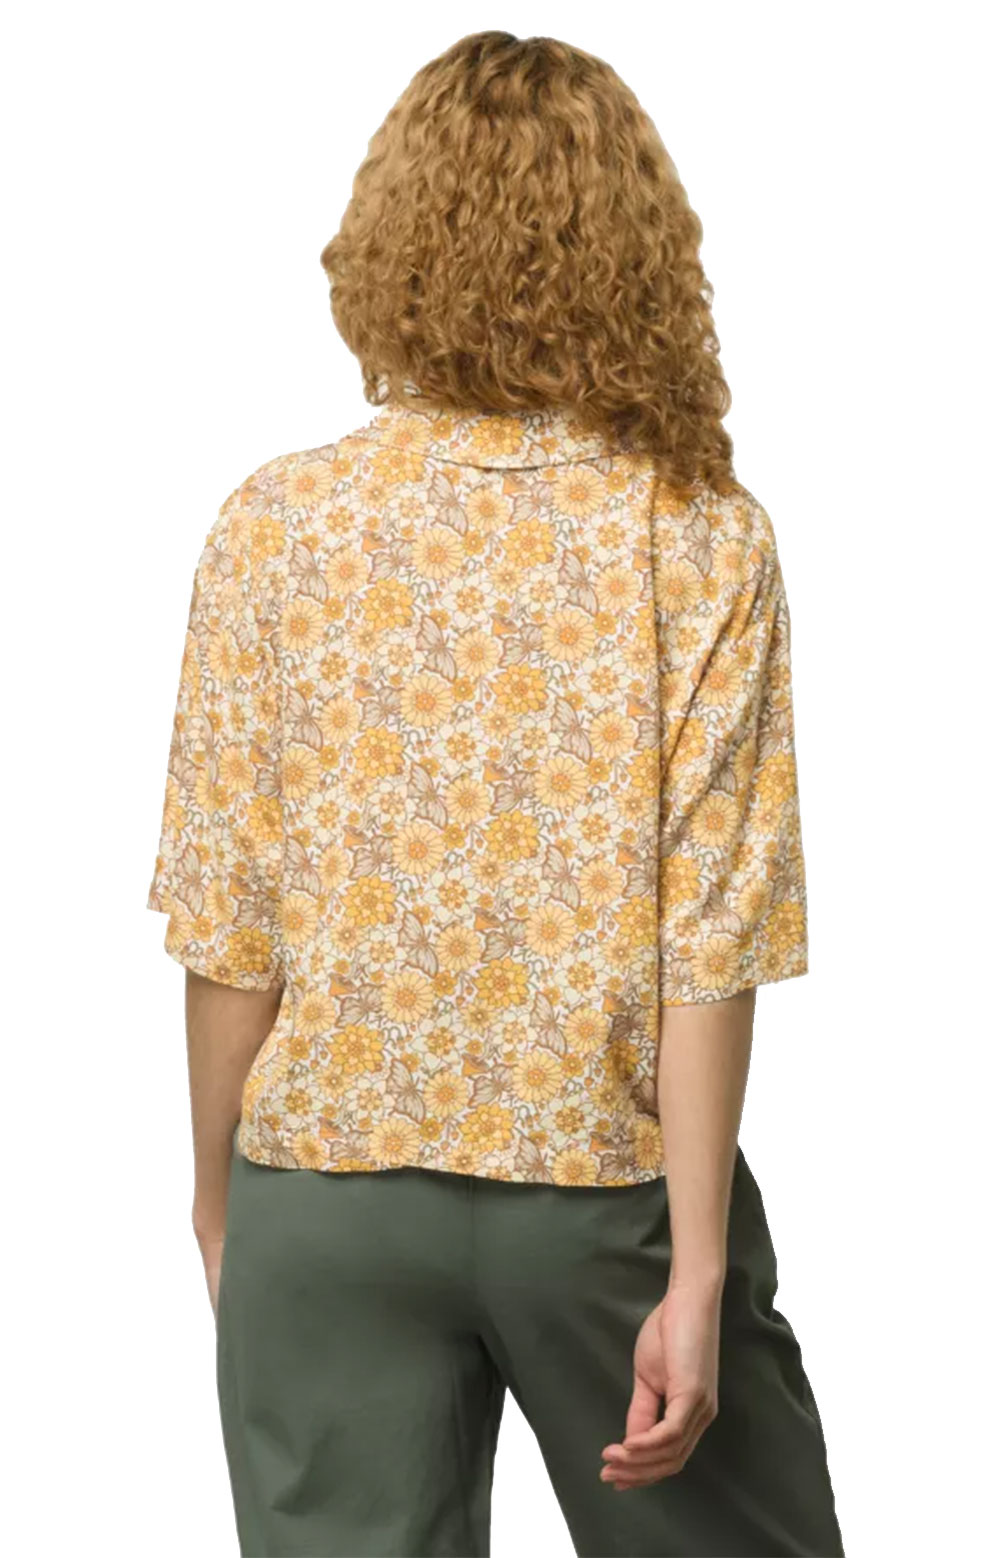 Trippy Floral Woven Shirt - Trippy Floral  2